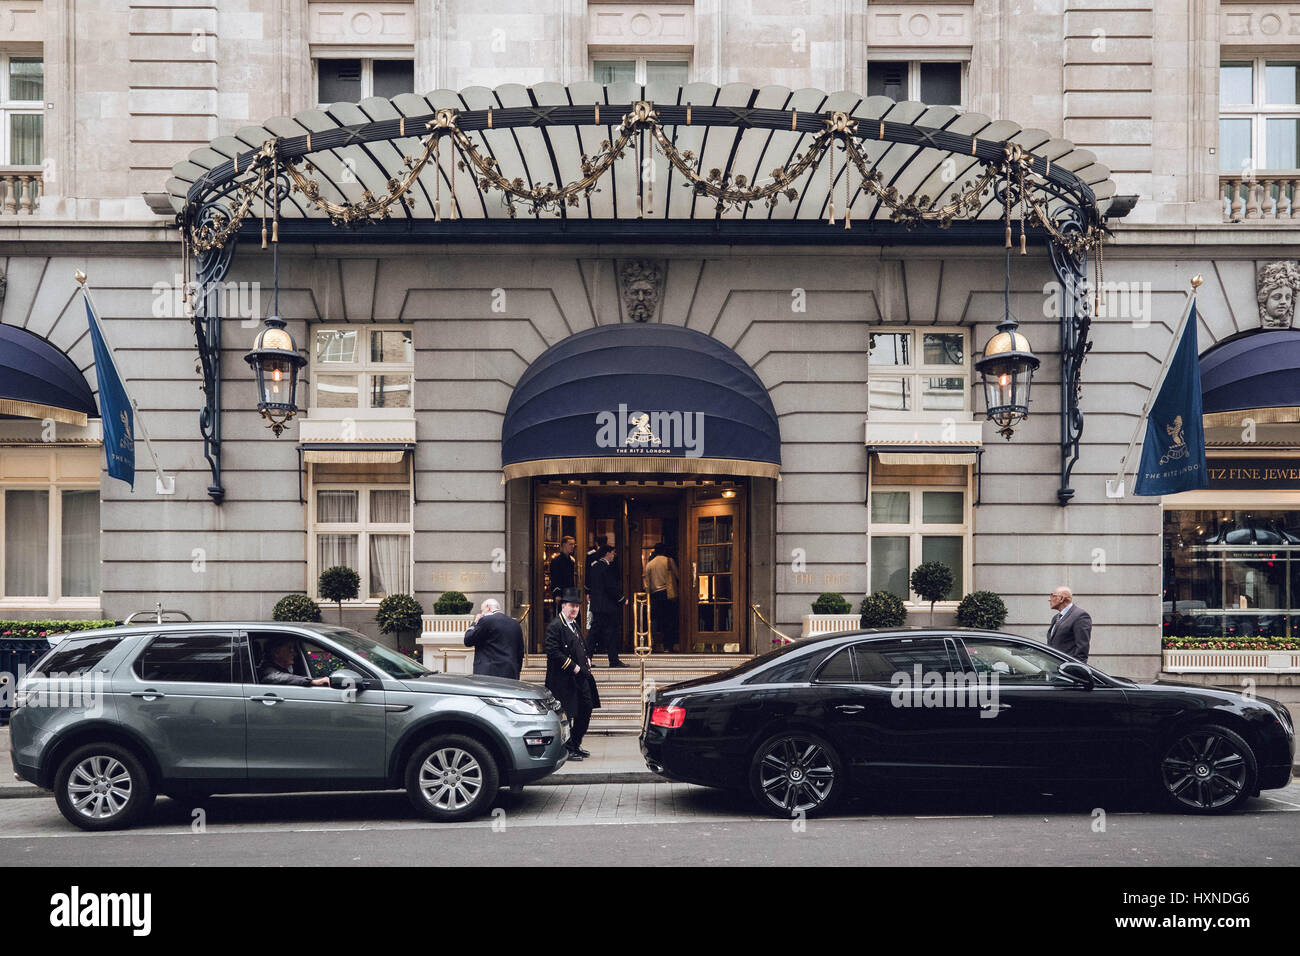 Colour photograph of the side entrance to London's The Ritz Hotel showing doormen and cars parked outside. - Stock Image